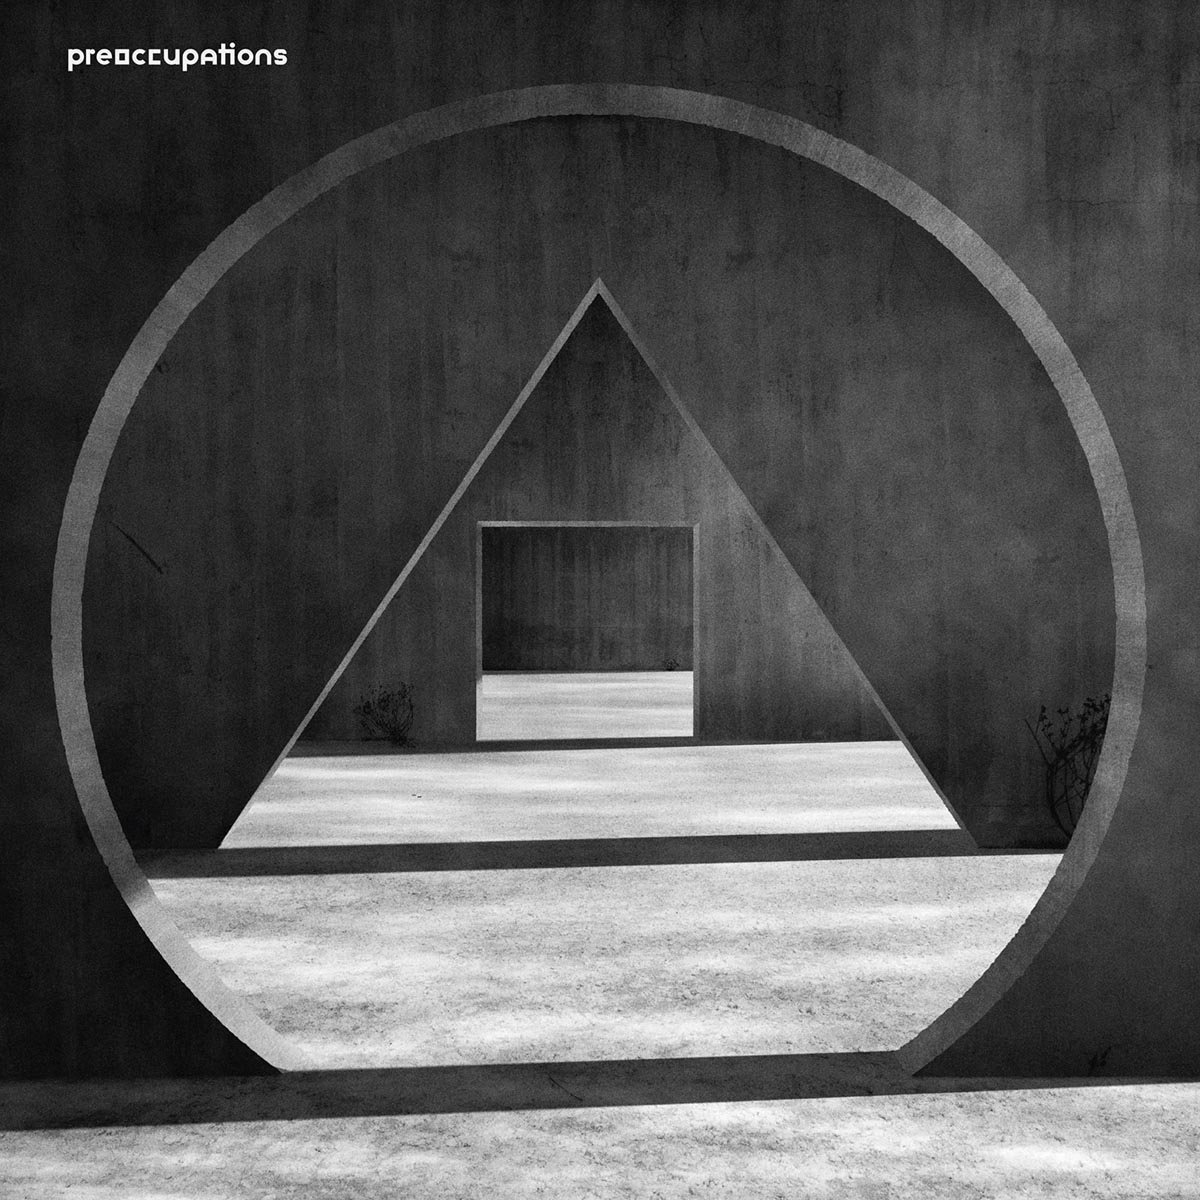 New Material by Preoccupations  Album Review